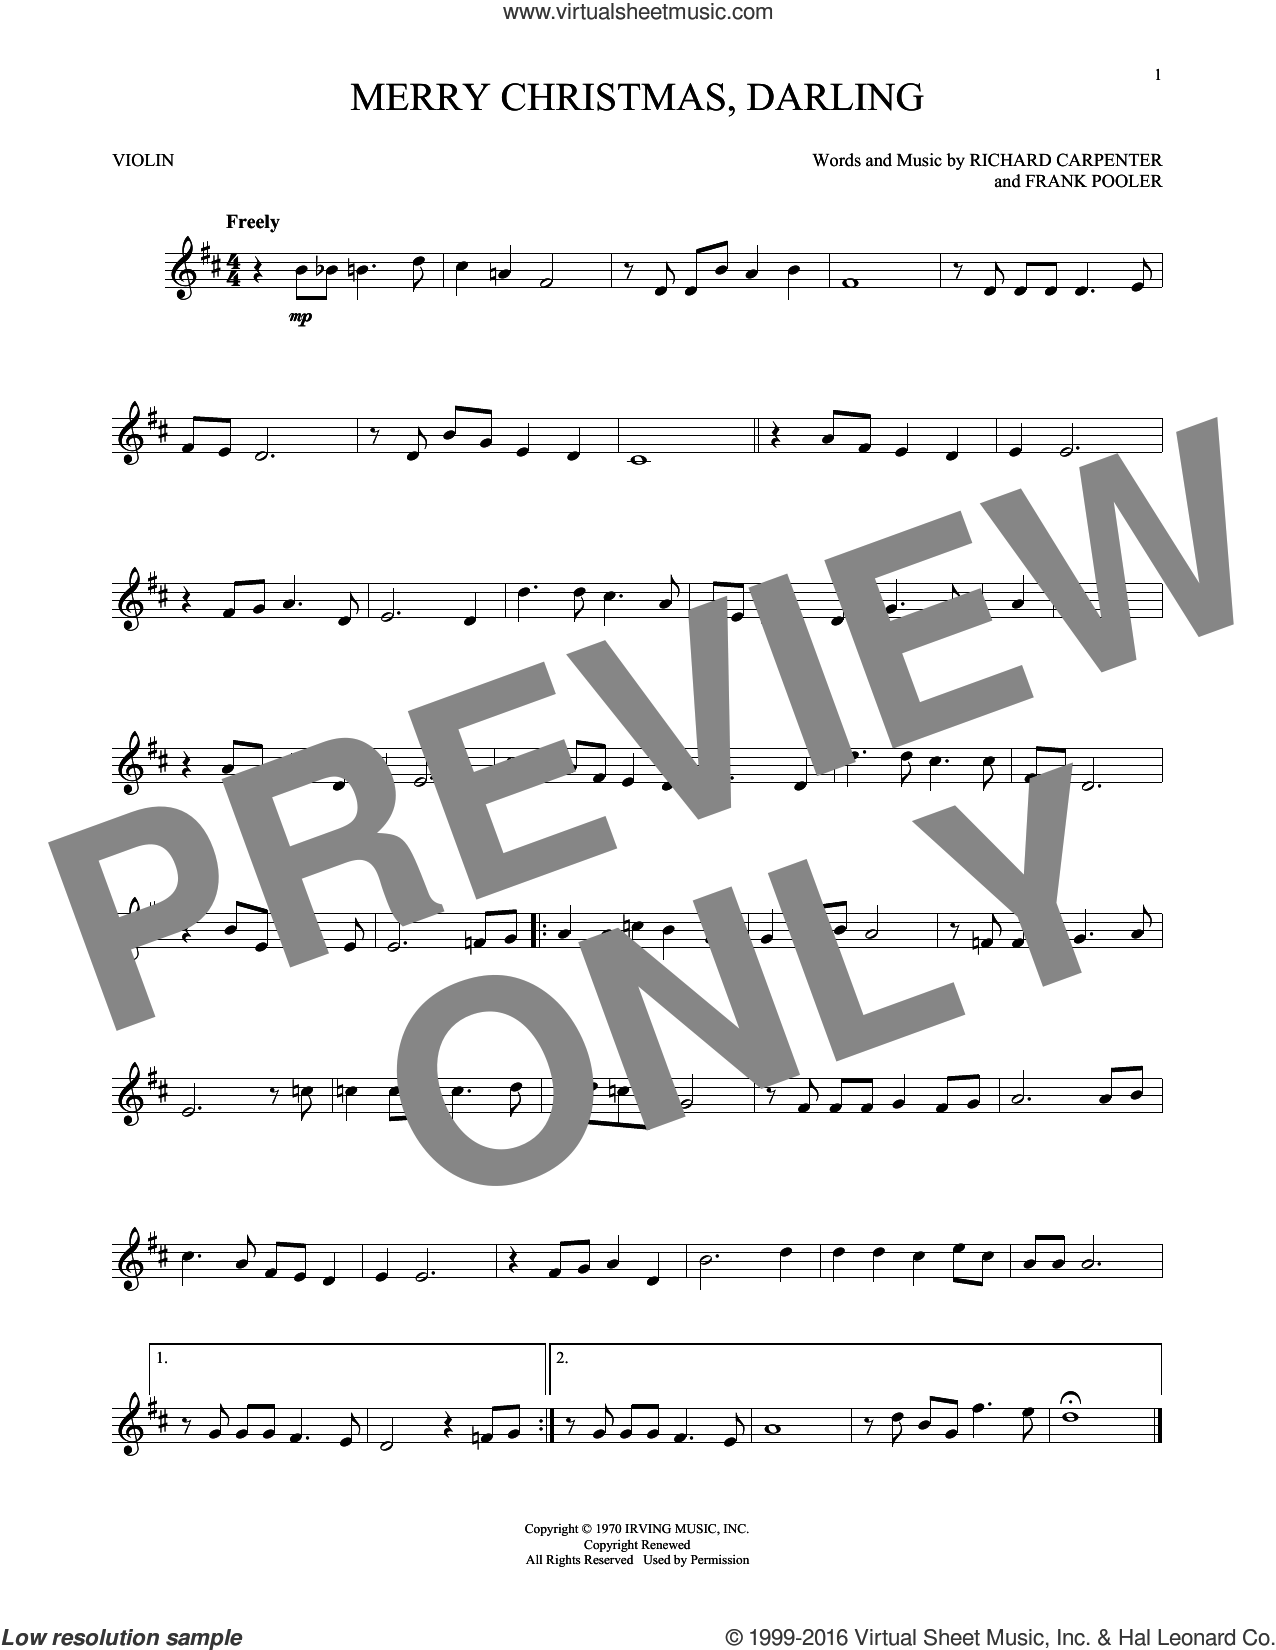 Merry Christmas, Darling sheet music for violin solo by Carpenters, Frank Pooler and Richard Carpenter, intermediate skill level